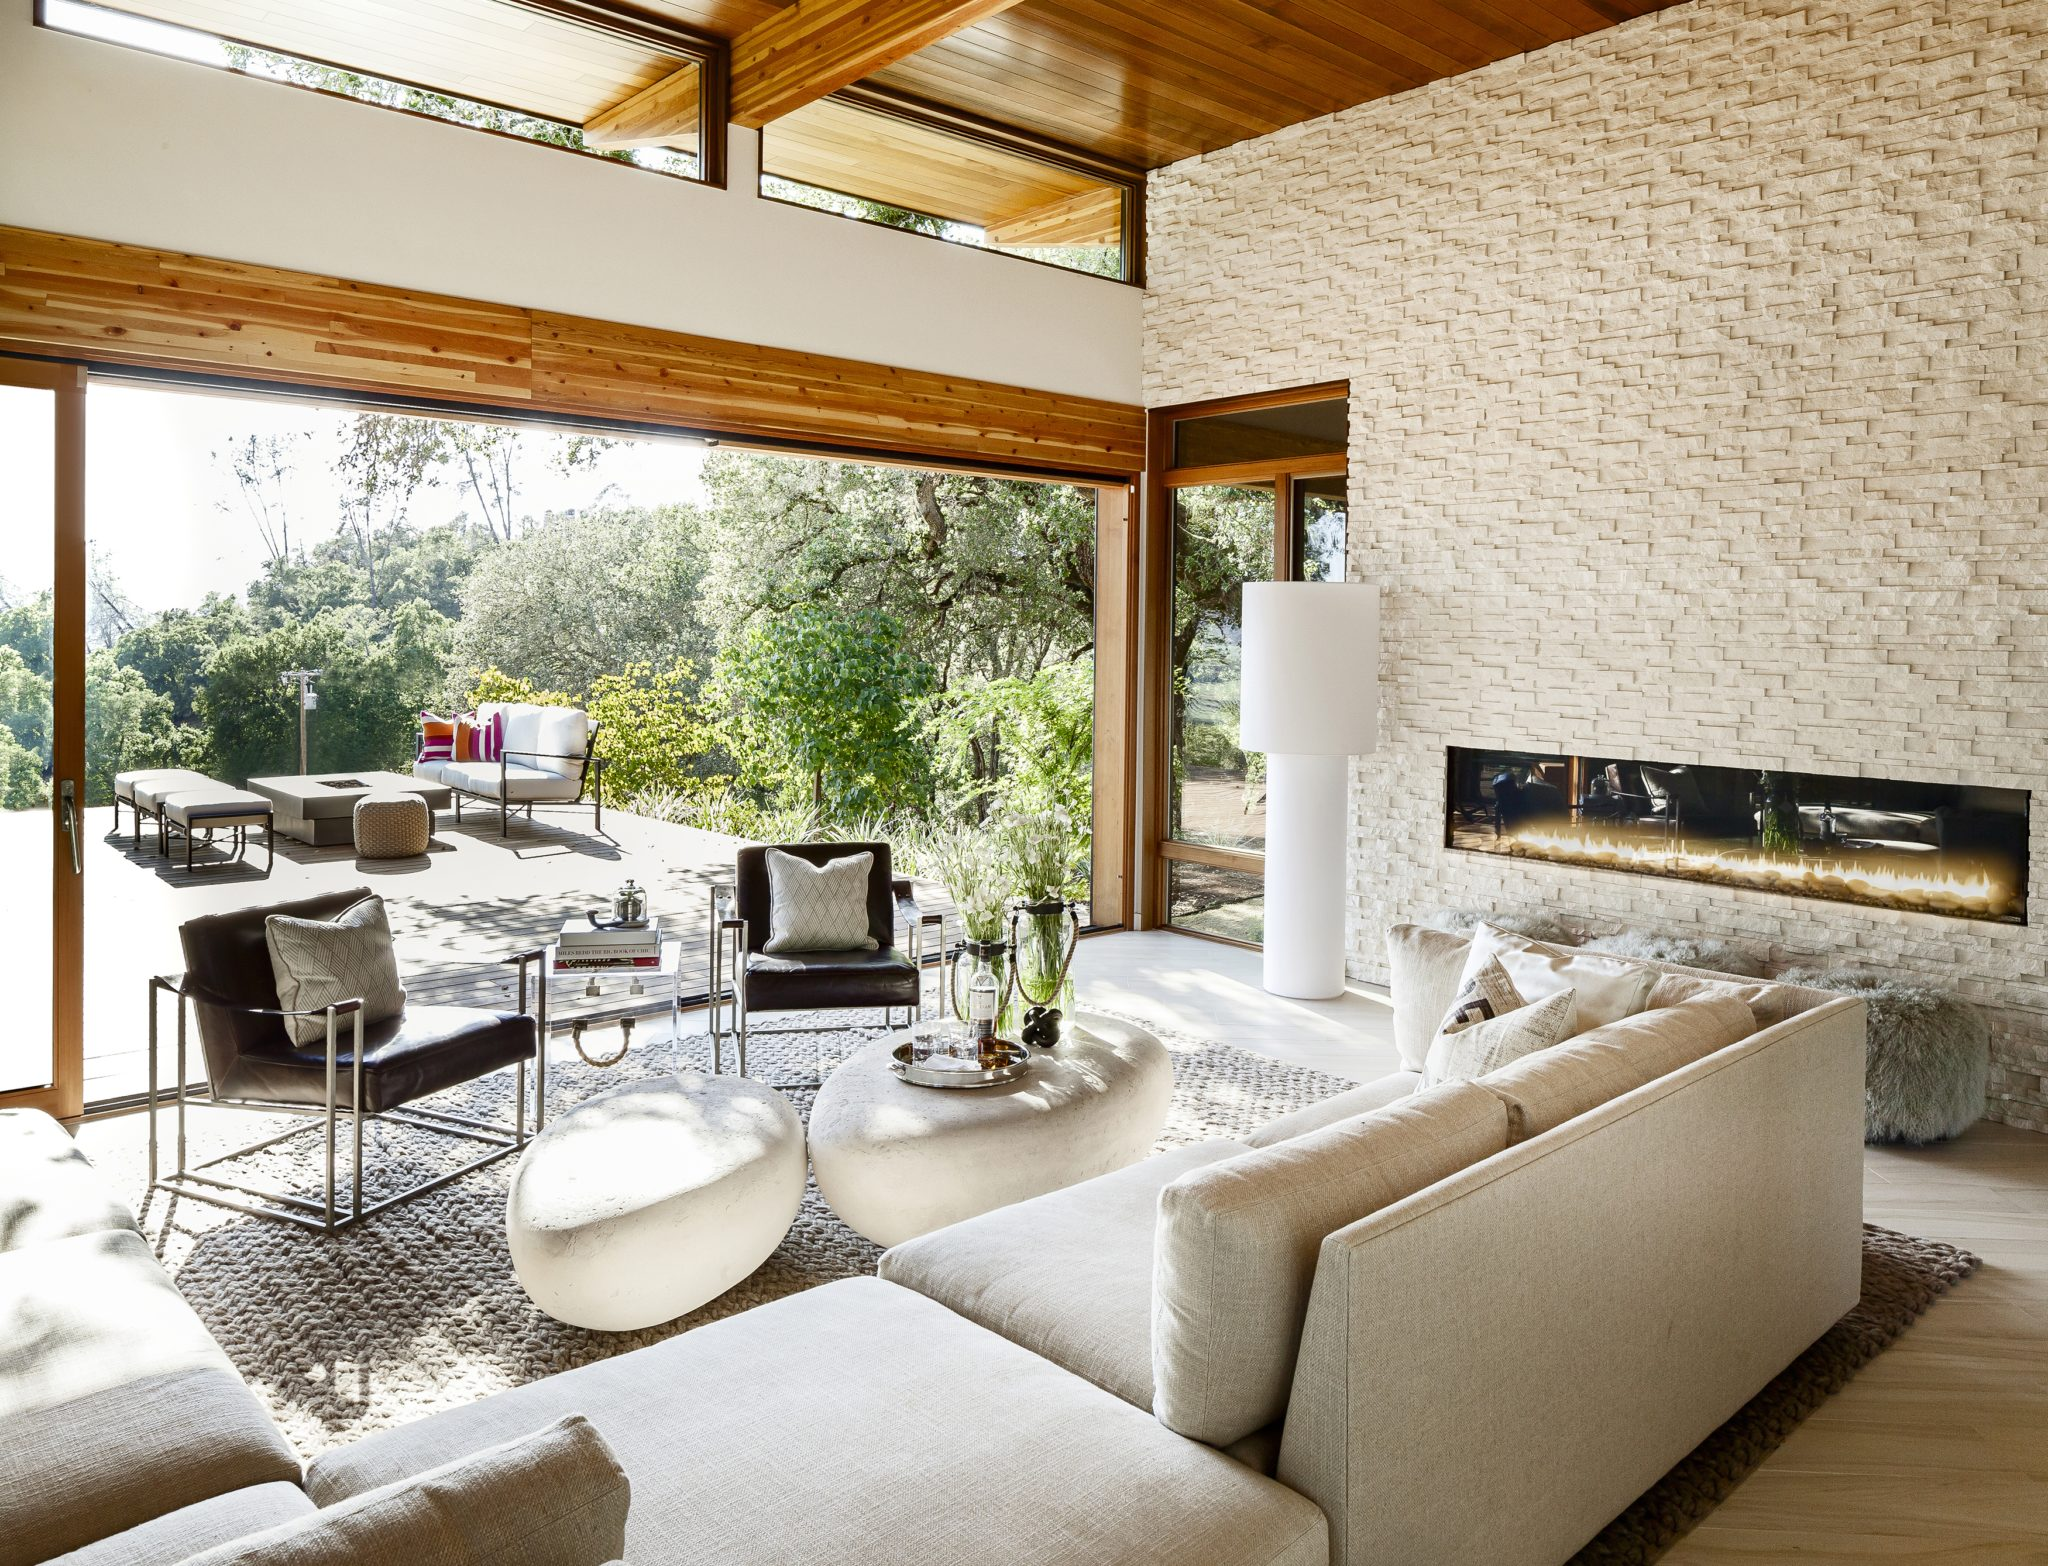 A long, cream-colored sectional from Mitchell Gold + Bob Williamsand modernistBernhardt armchairsprovideample seating in the living room. Thetaupe rug from Cabana Home adds another lay of texture to the space, as does a detailed tile layout from Ceramic Tile Designthat surrounds the fireplace.Near the fireplace, theMongolian wool stoolsare fromPfeifer Studio, and the stone coffee tables are from Phillips Collection. The white, contemporary floor lamp from Foscarini brings in an avant-garde note to the overall design.